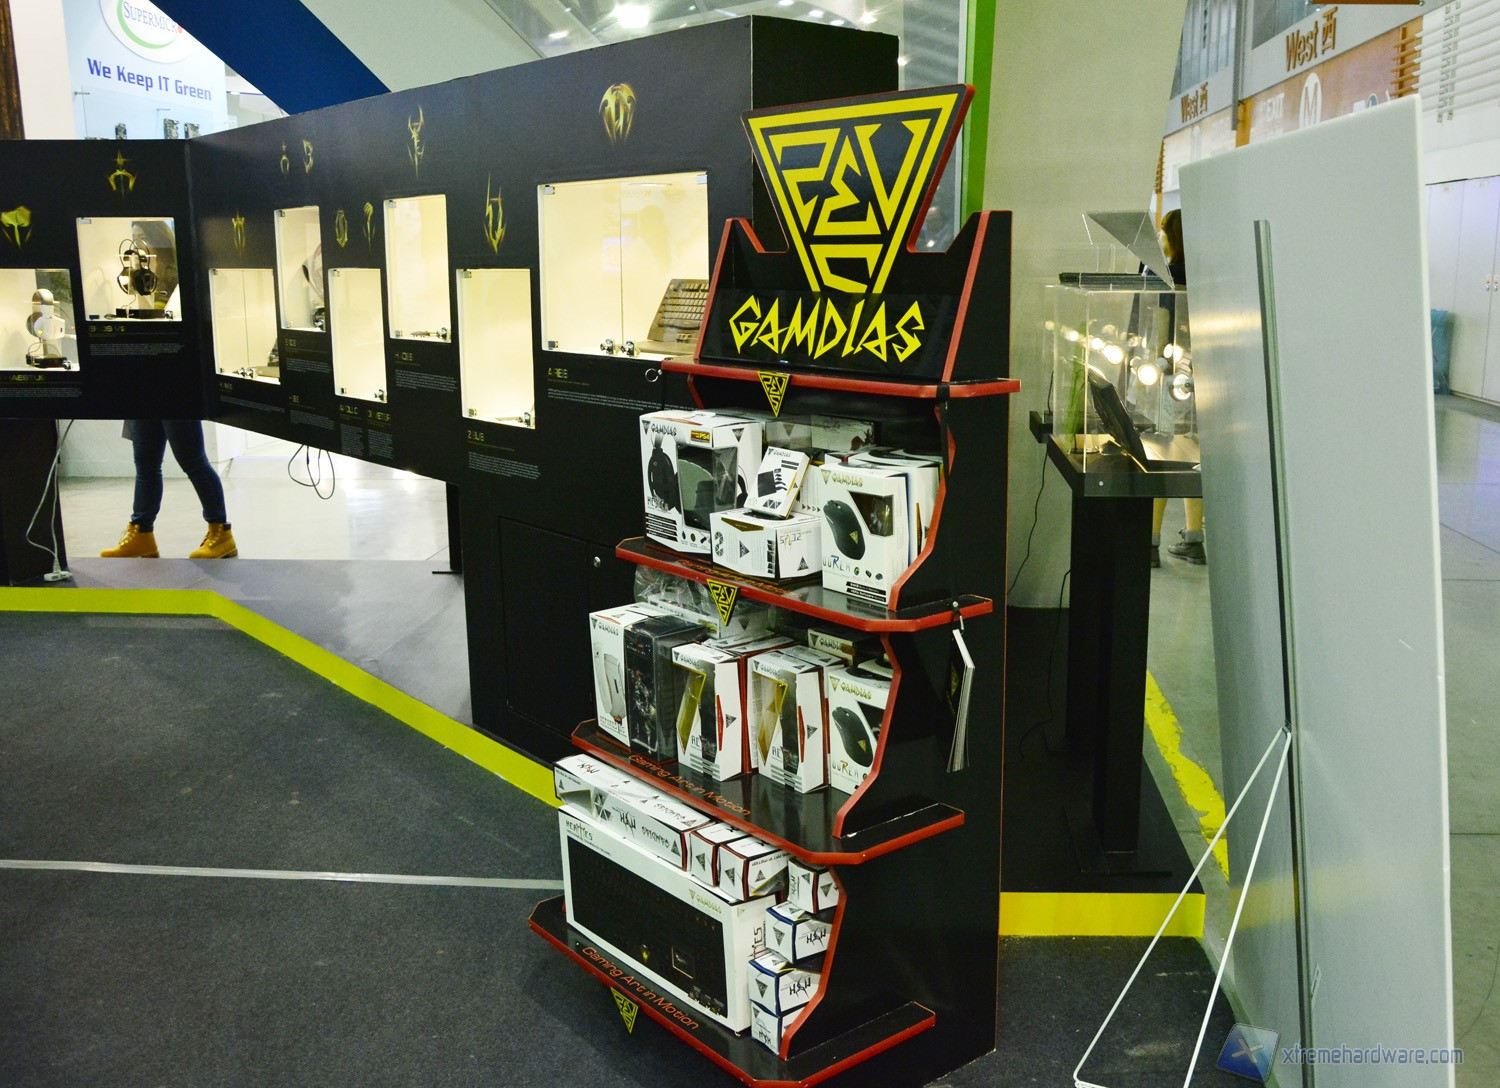 GAMDIAS display stand